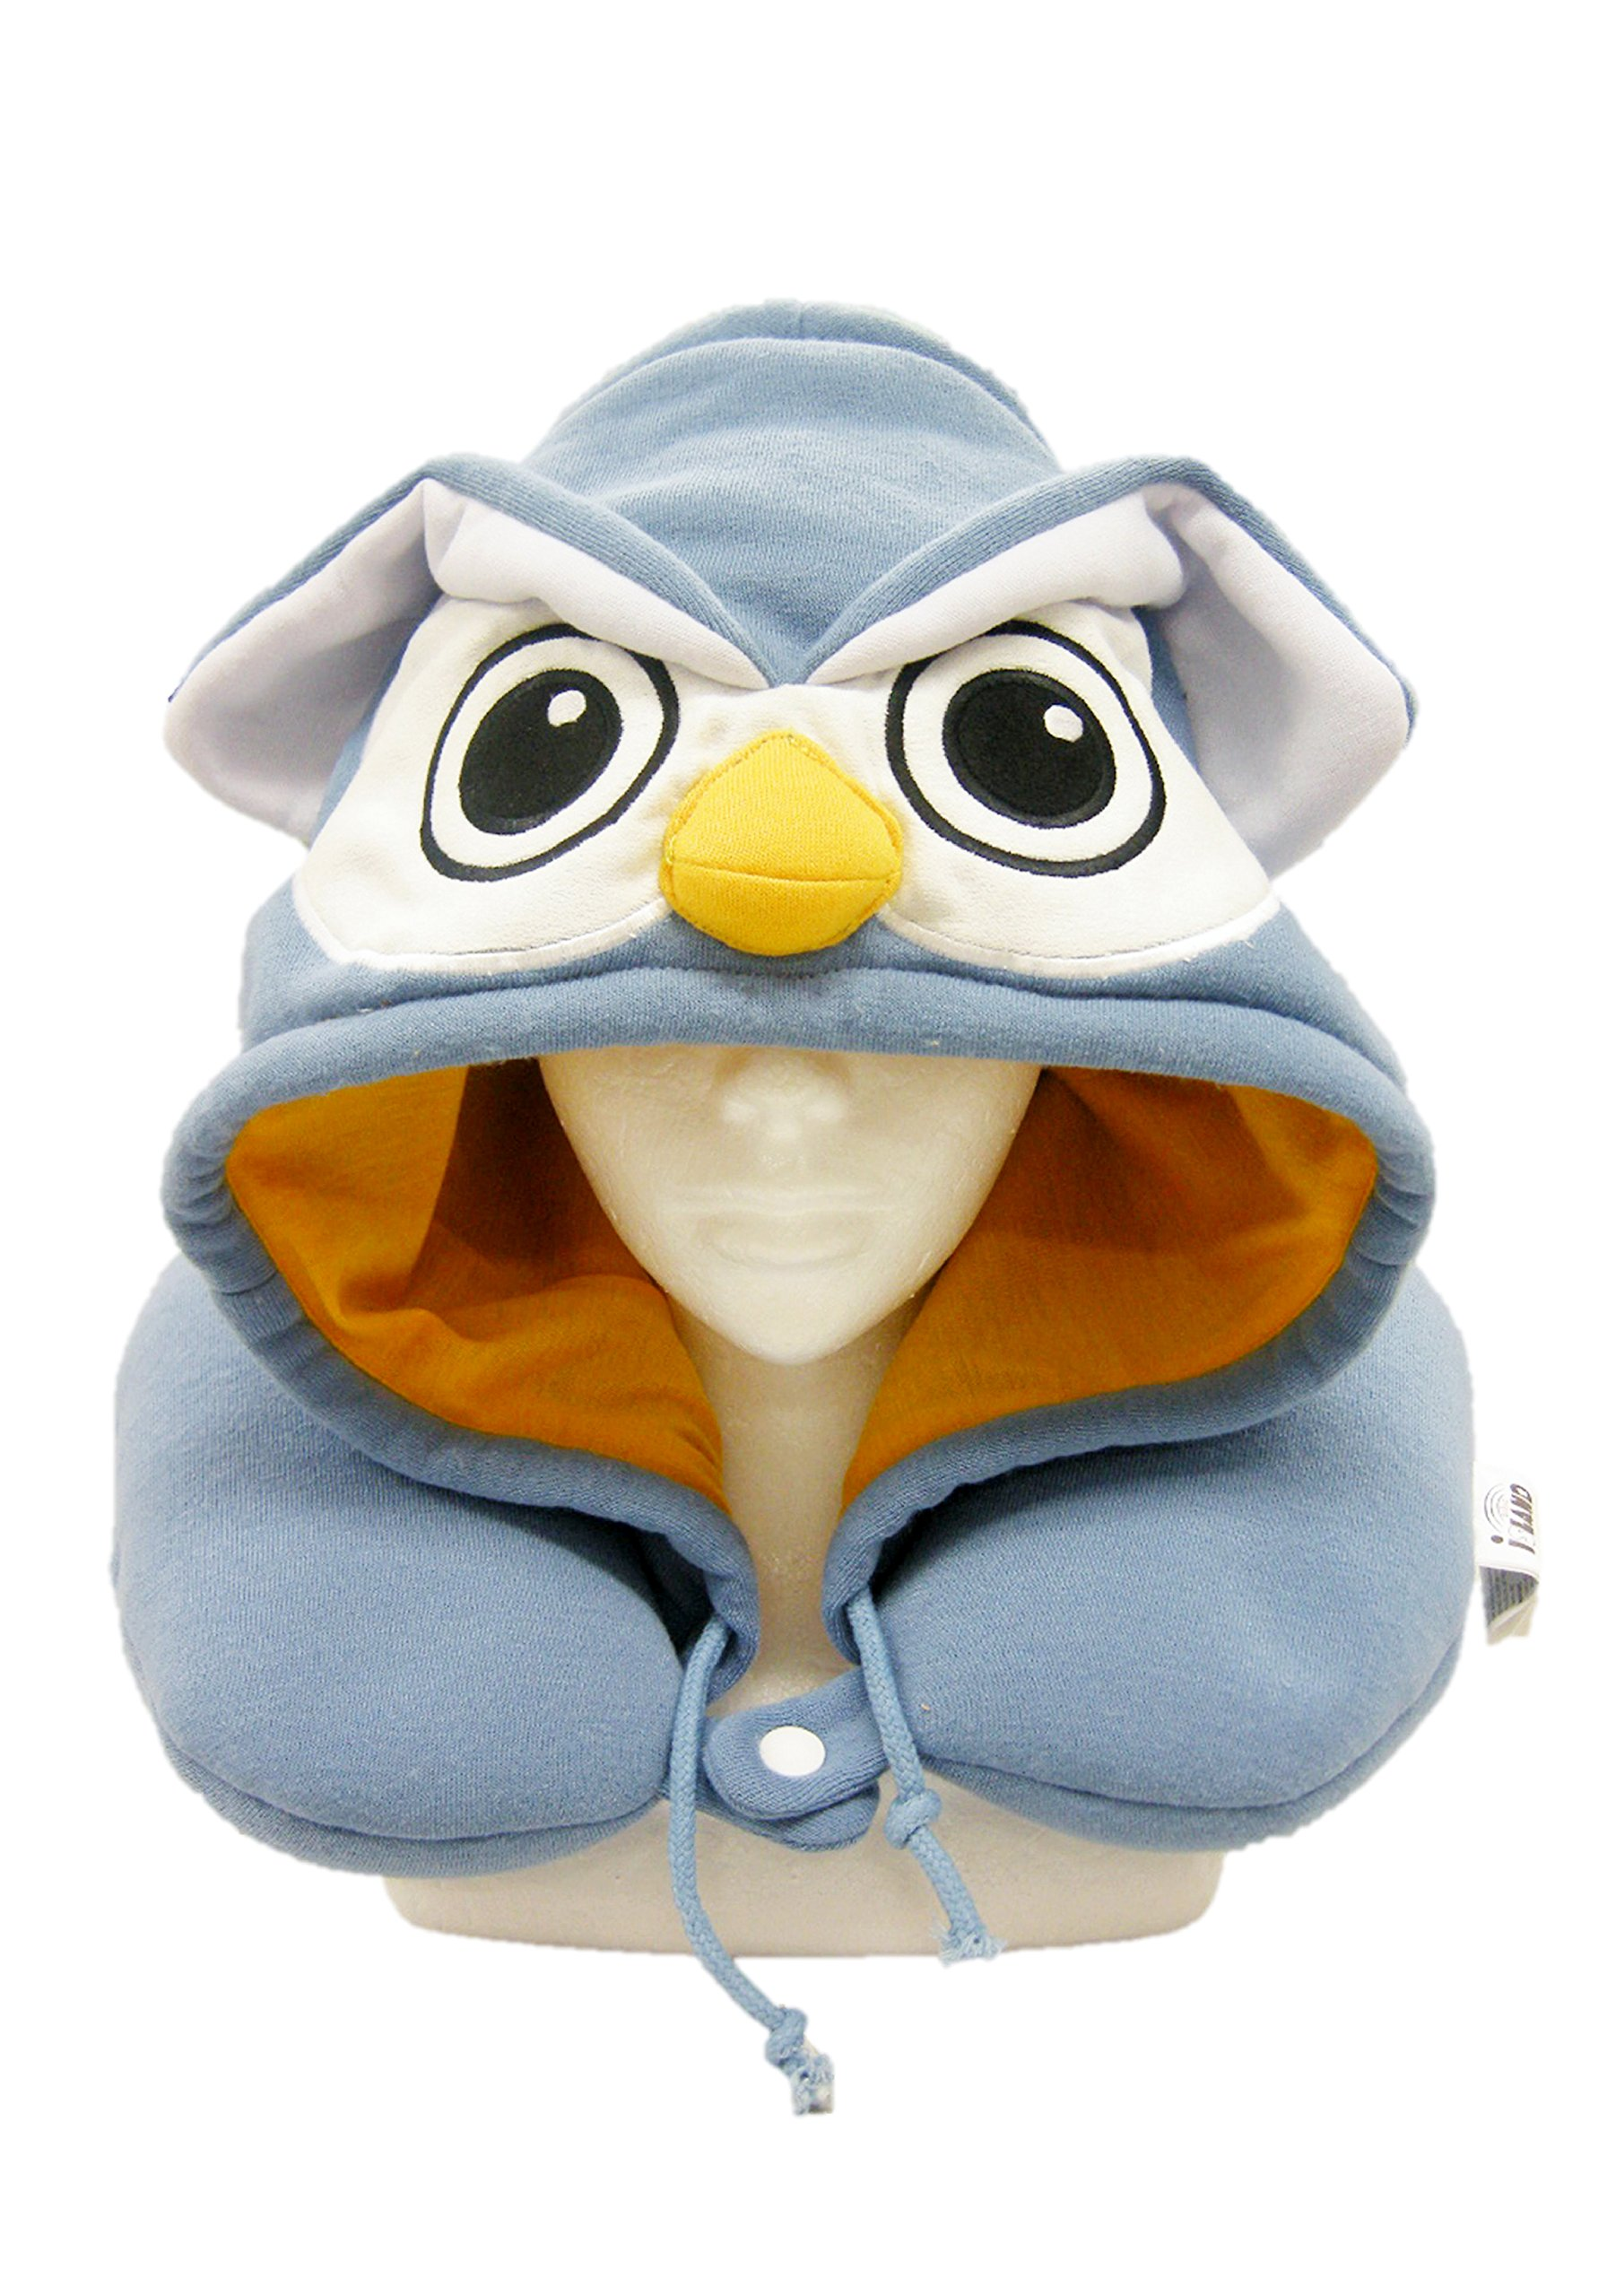 SAZAC Animal Neck Support Pillow - Soft, Cozy Travel Cushion with Adjustable Toggle - Attached Hood for Warmth and Privacy - Authentic Japanese Kawaii Design - Premium Quality (Owl)